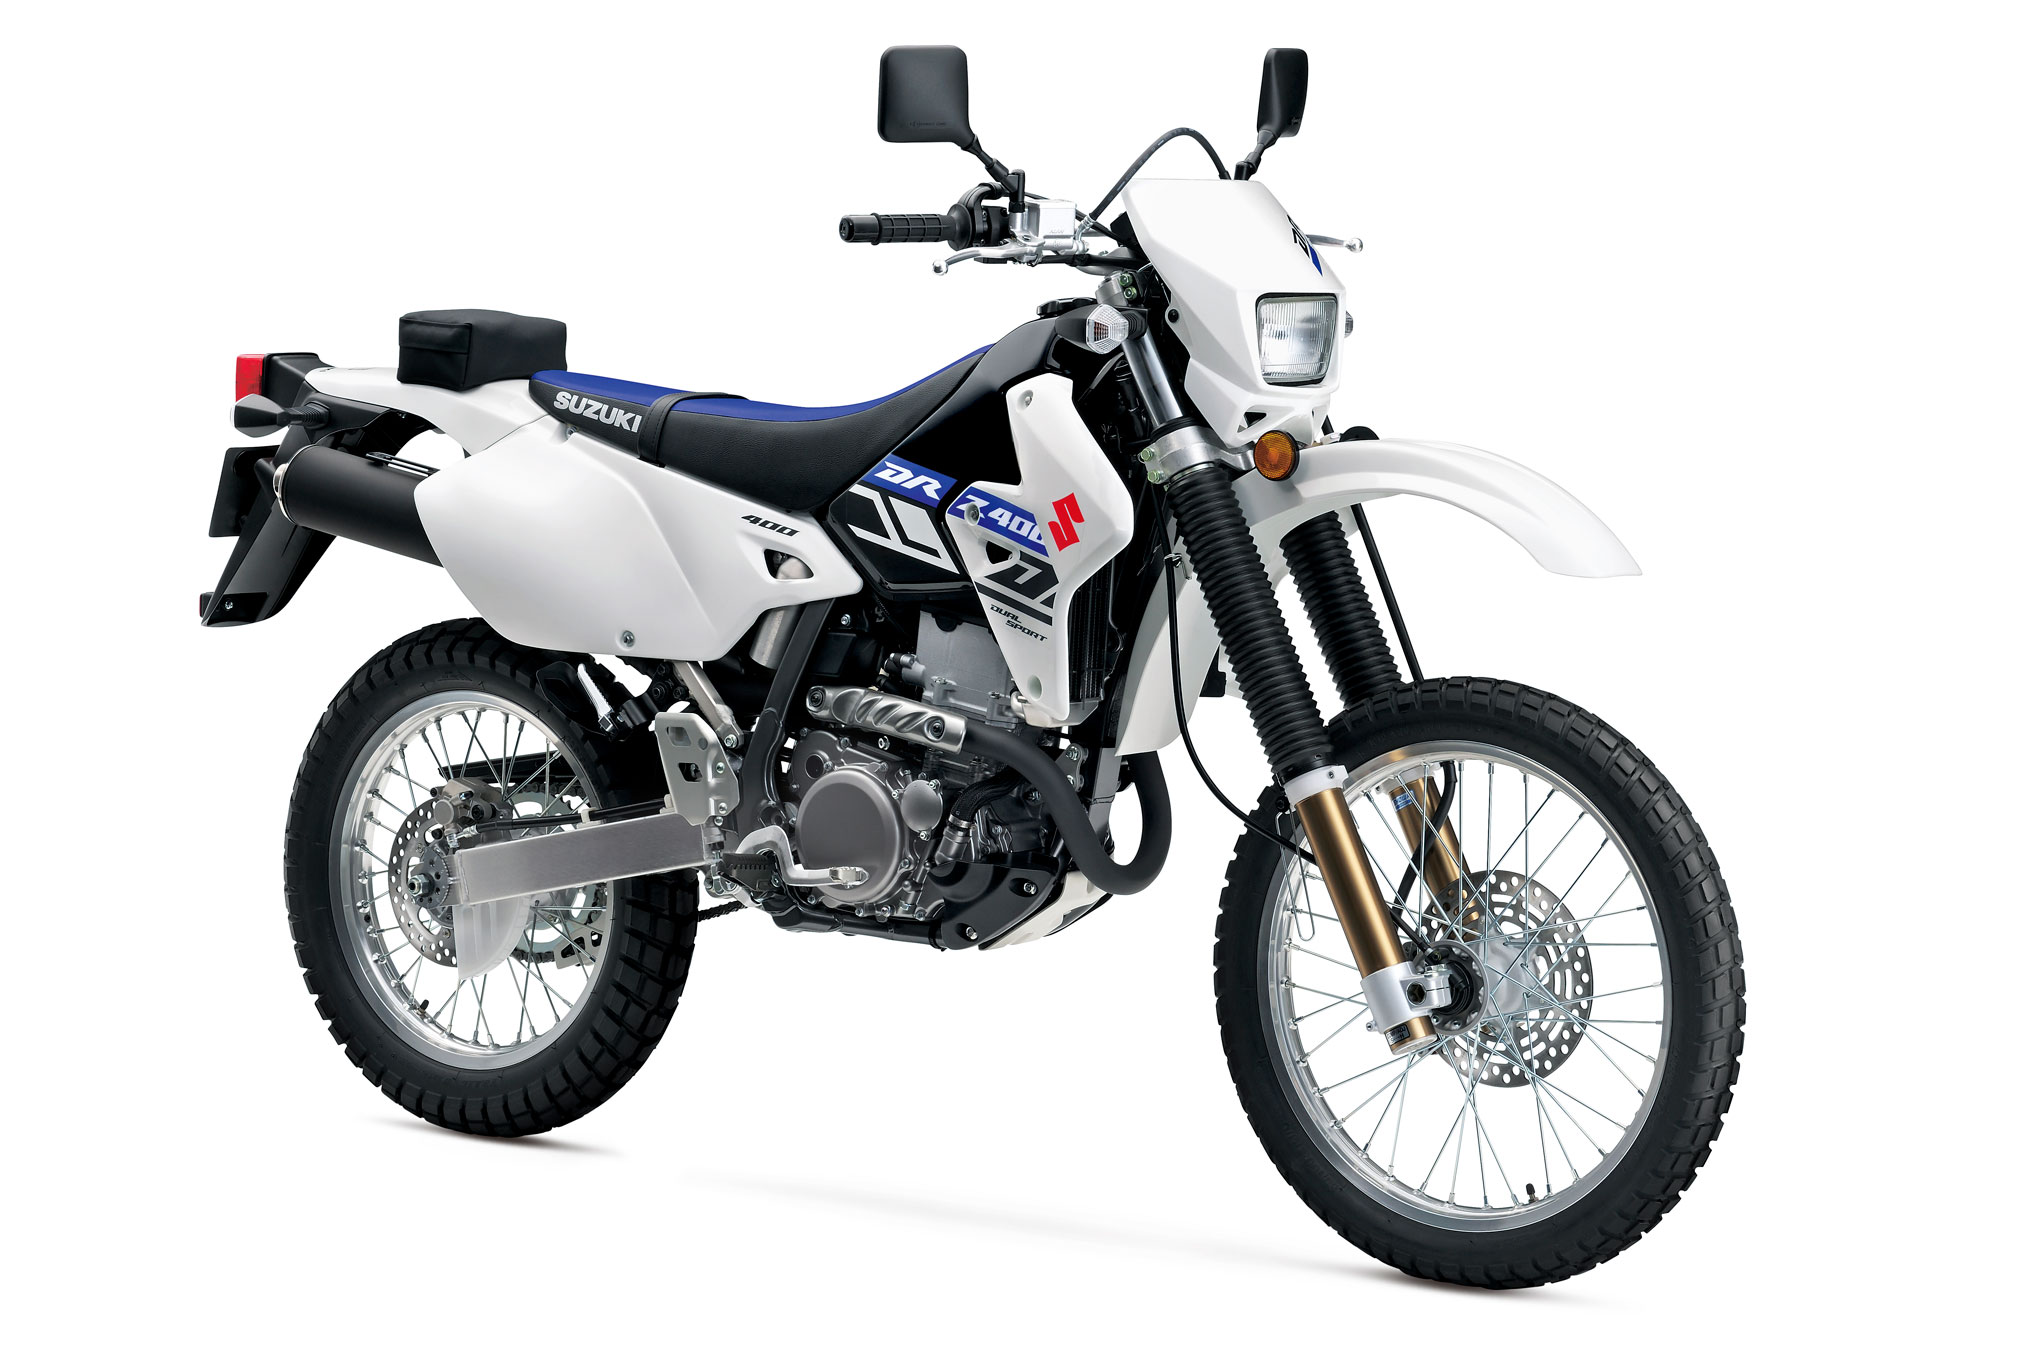 2019 Suzuki DR-Z400S Guide • Total Motorcycle